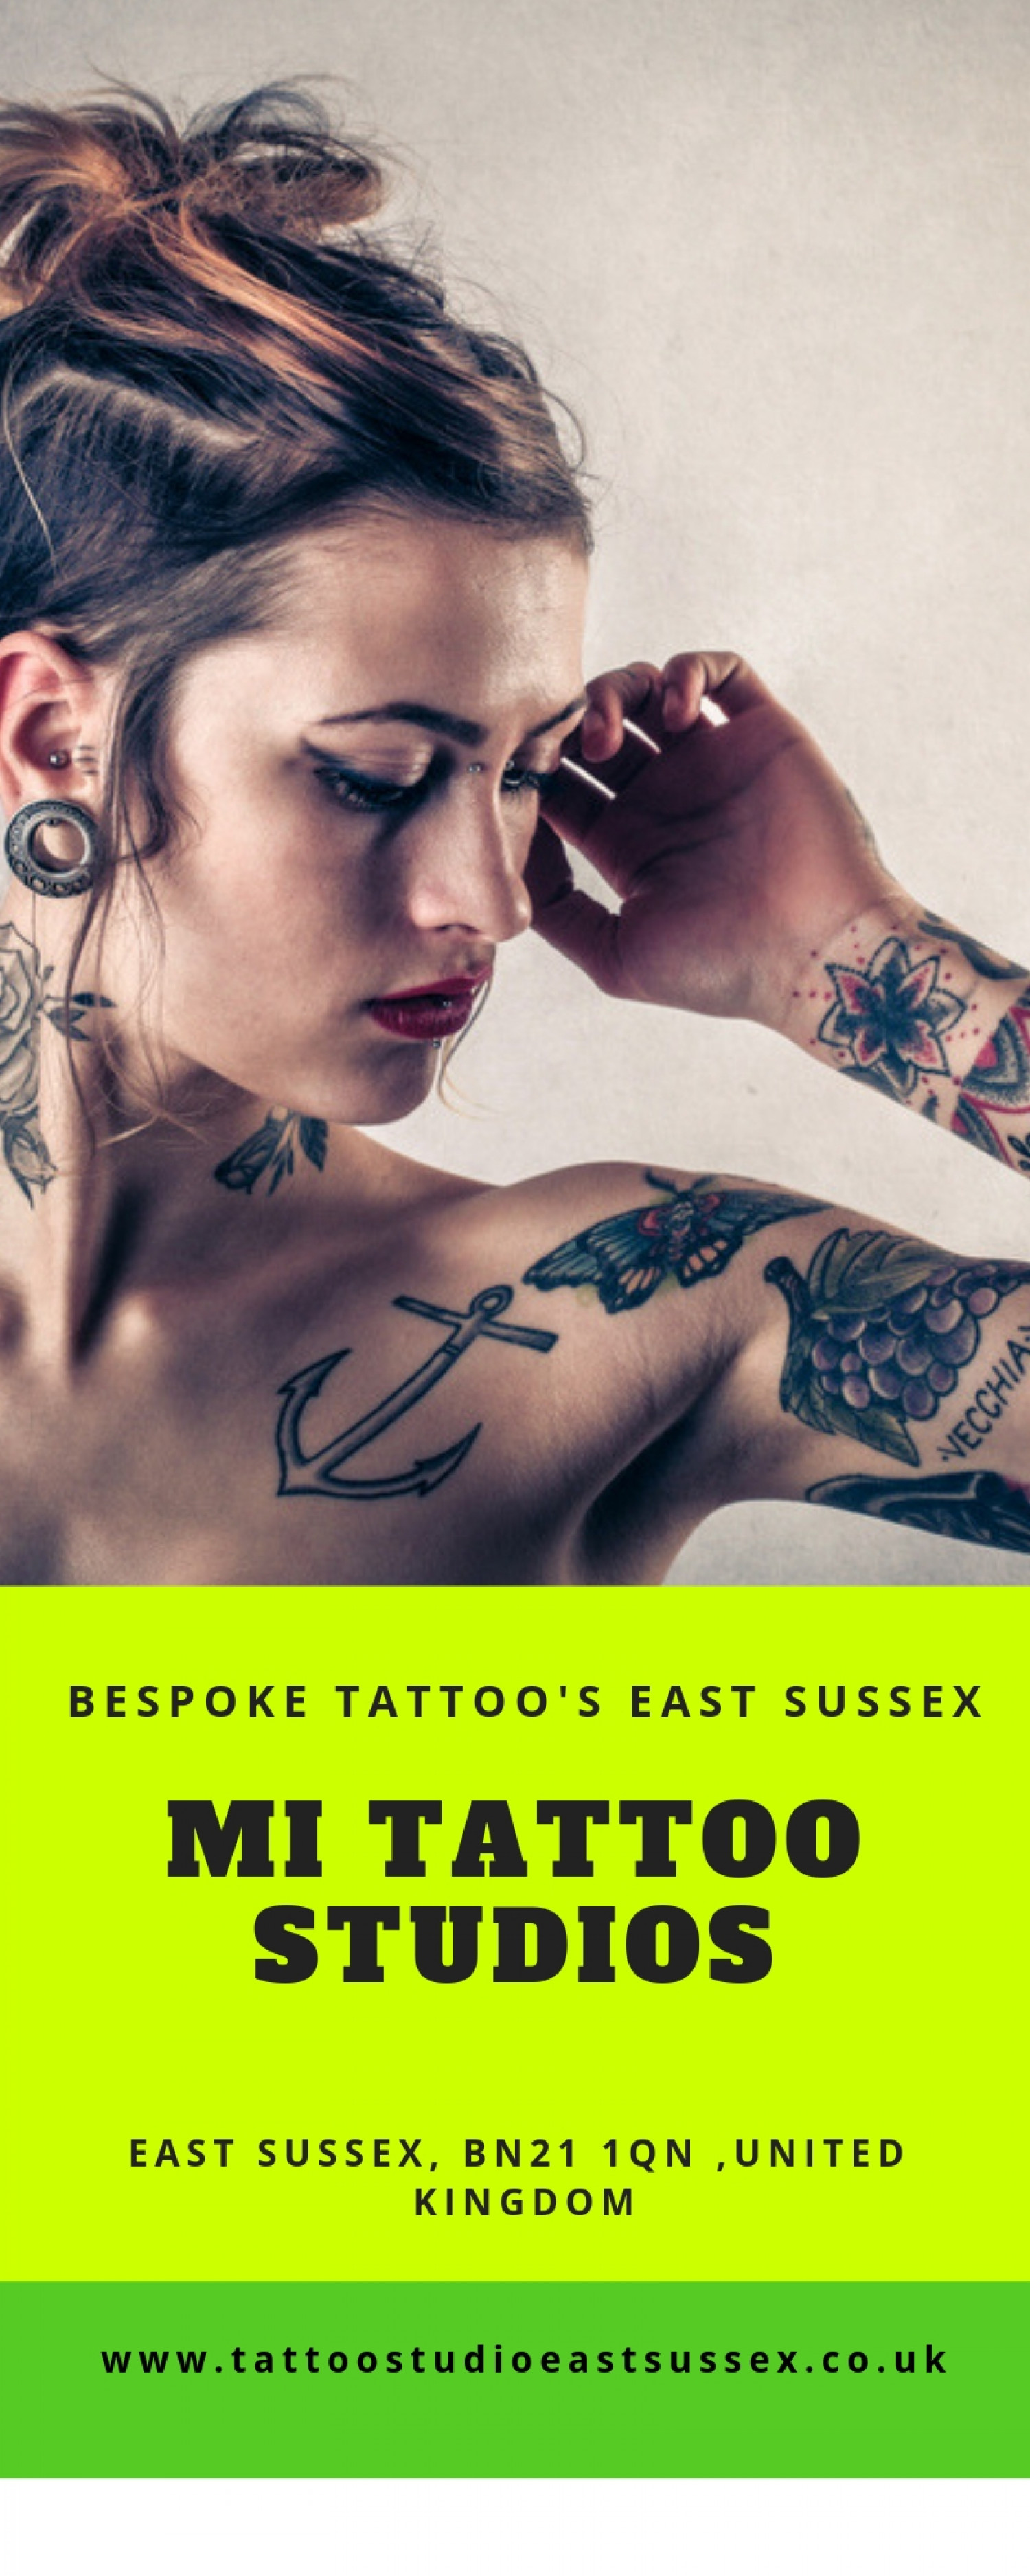 Bespoke Tattoo in East Sussex Infographic